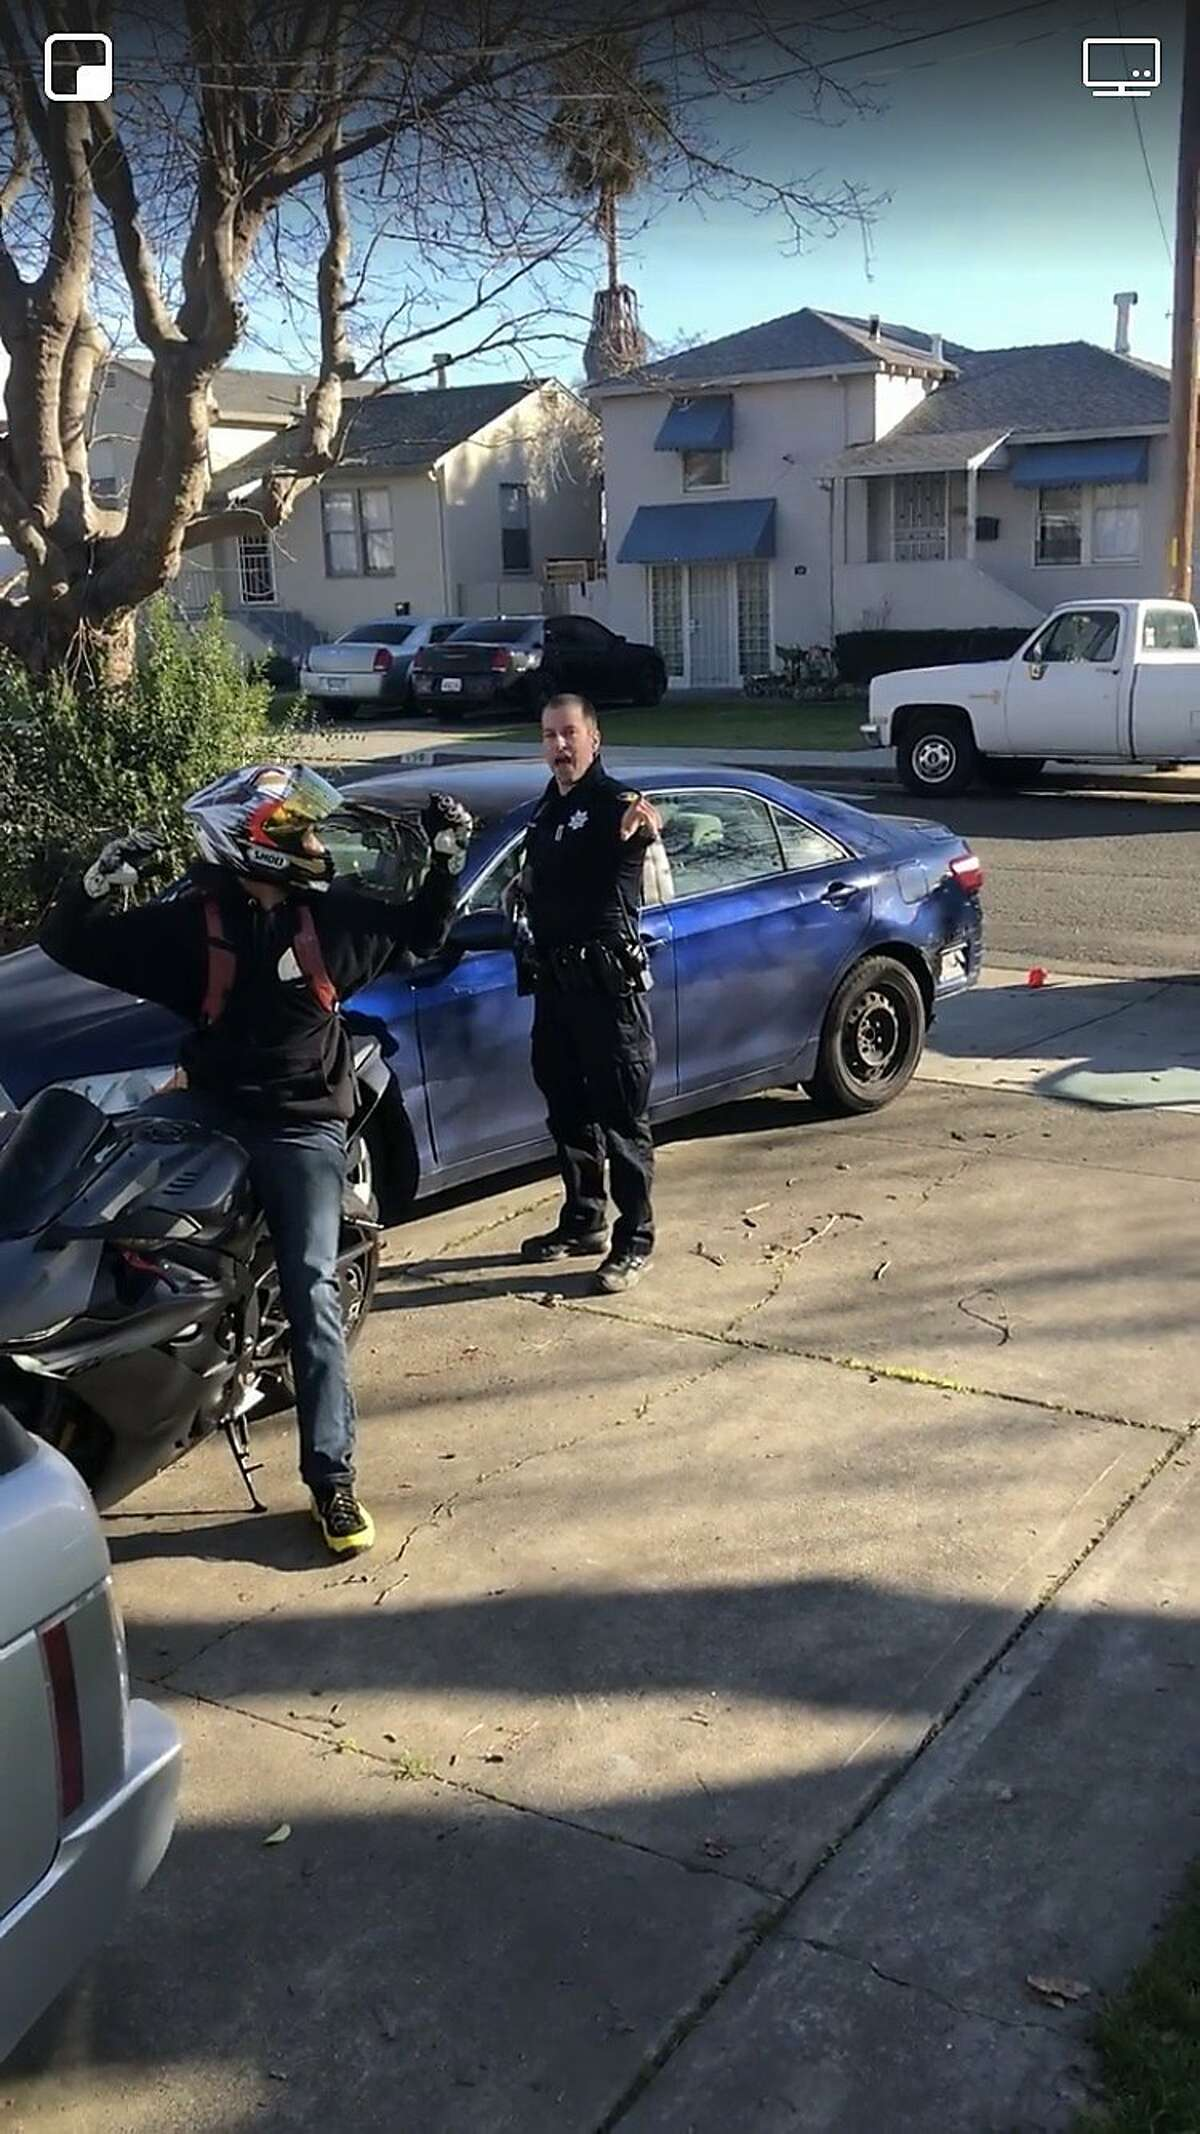 """Adrian Burrell, 28, said he got a concussion when he says he was unjustly detained by a Vallejo police officer on Tuesday, Jan. 22, 2019. A screenshot from a cell phone video taken by Burrell during the incident shows an officer wearing a nameplate reading, """"D. McLaughlin."""" Officer David McLaughlin was introduced as a new hire to the Vallejo Police Department in May 2014, according to a Vallejo City Manager's report."""